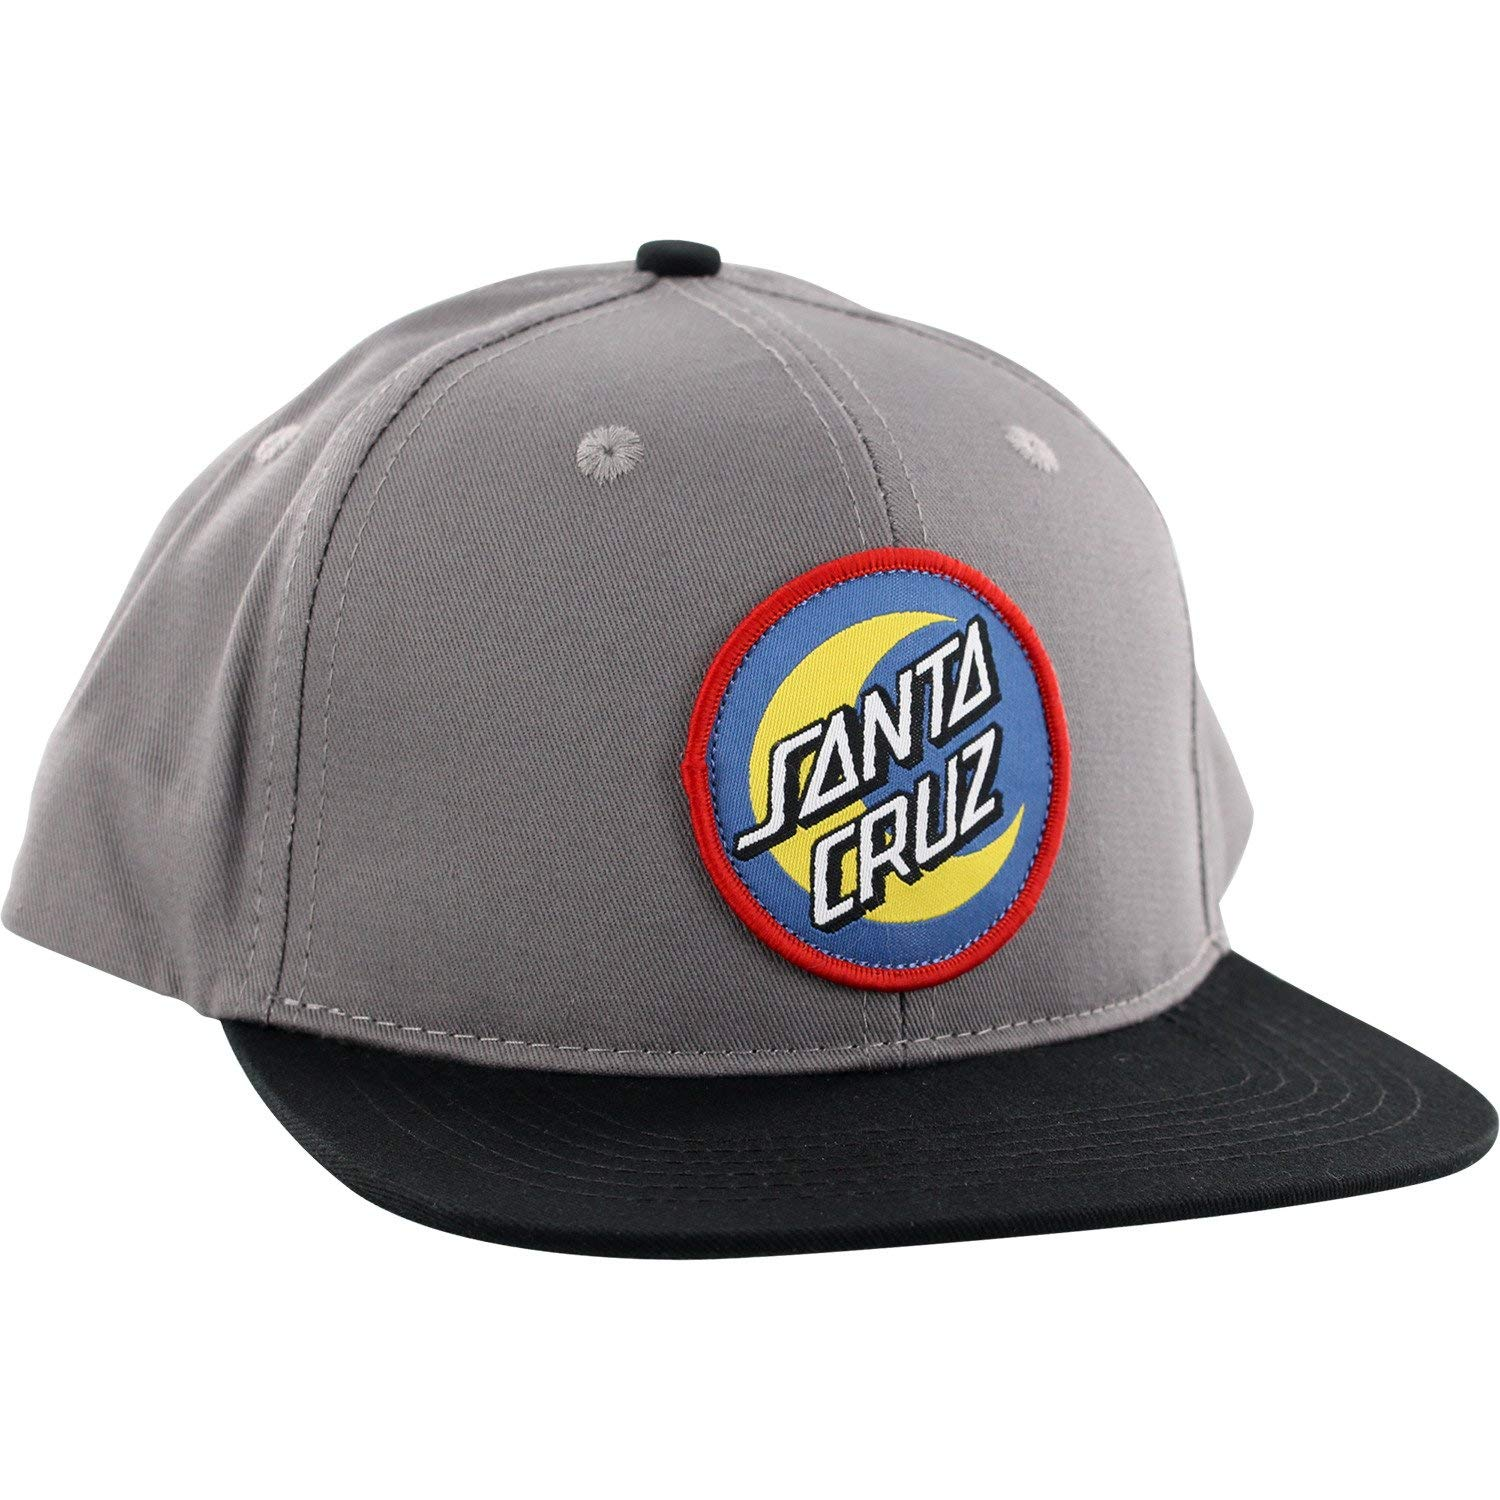 54fb6102f01c3 Get Quotations · Santa Cruz Skateboards Moon Dot Badge Grey Black Snapback  Hat - Adjustable